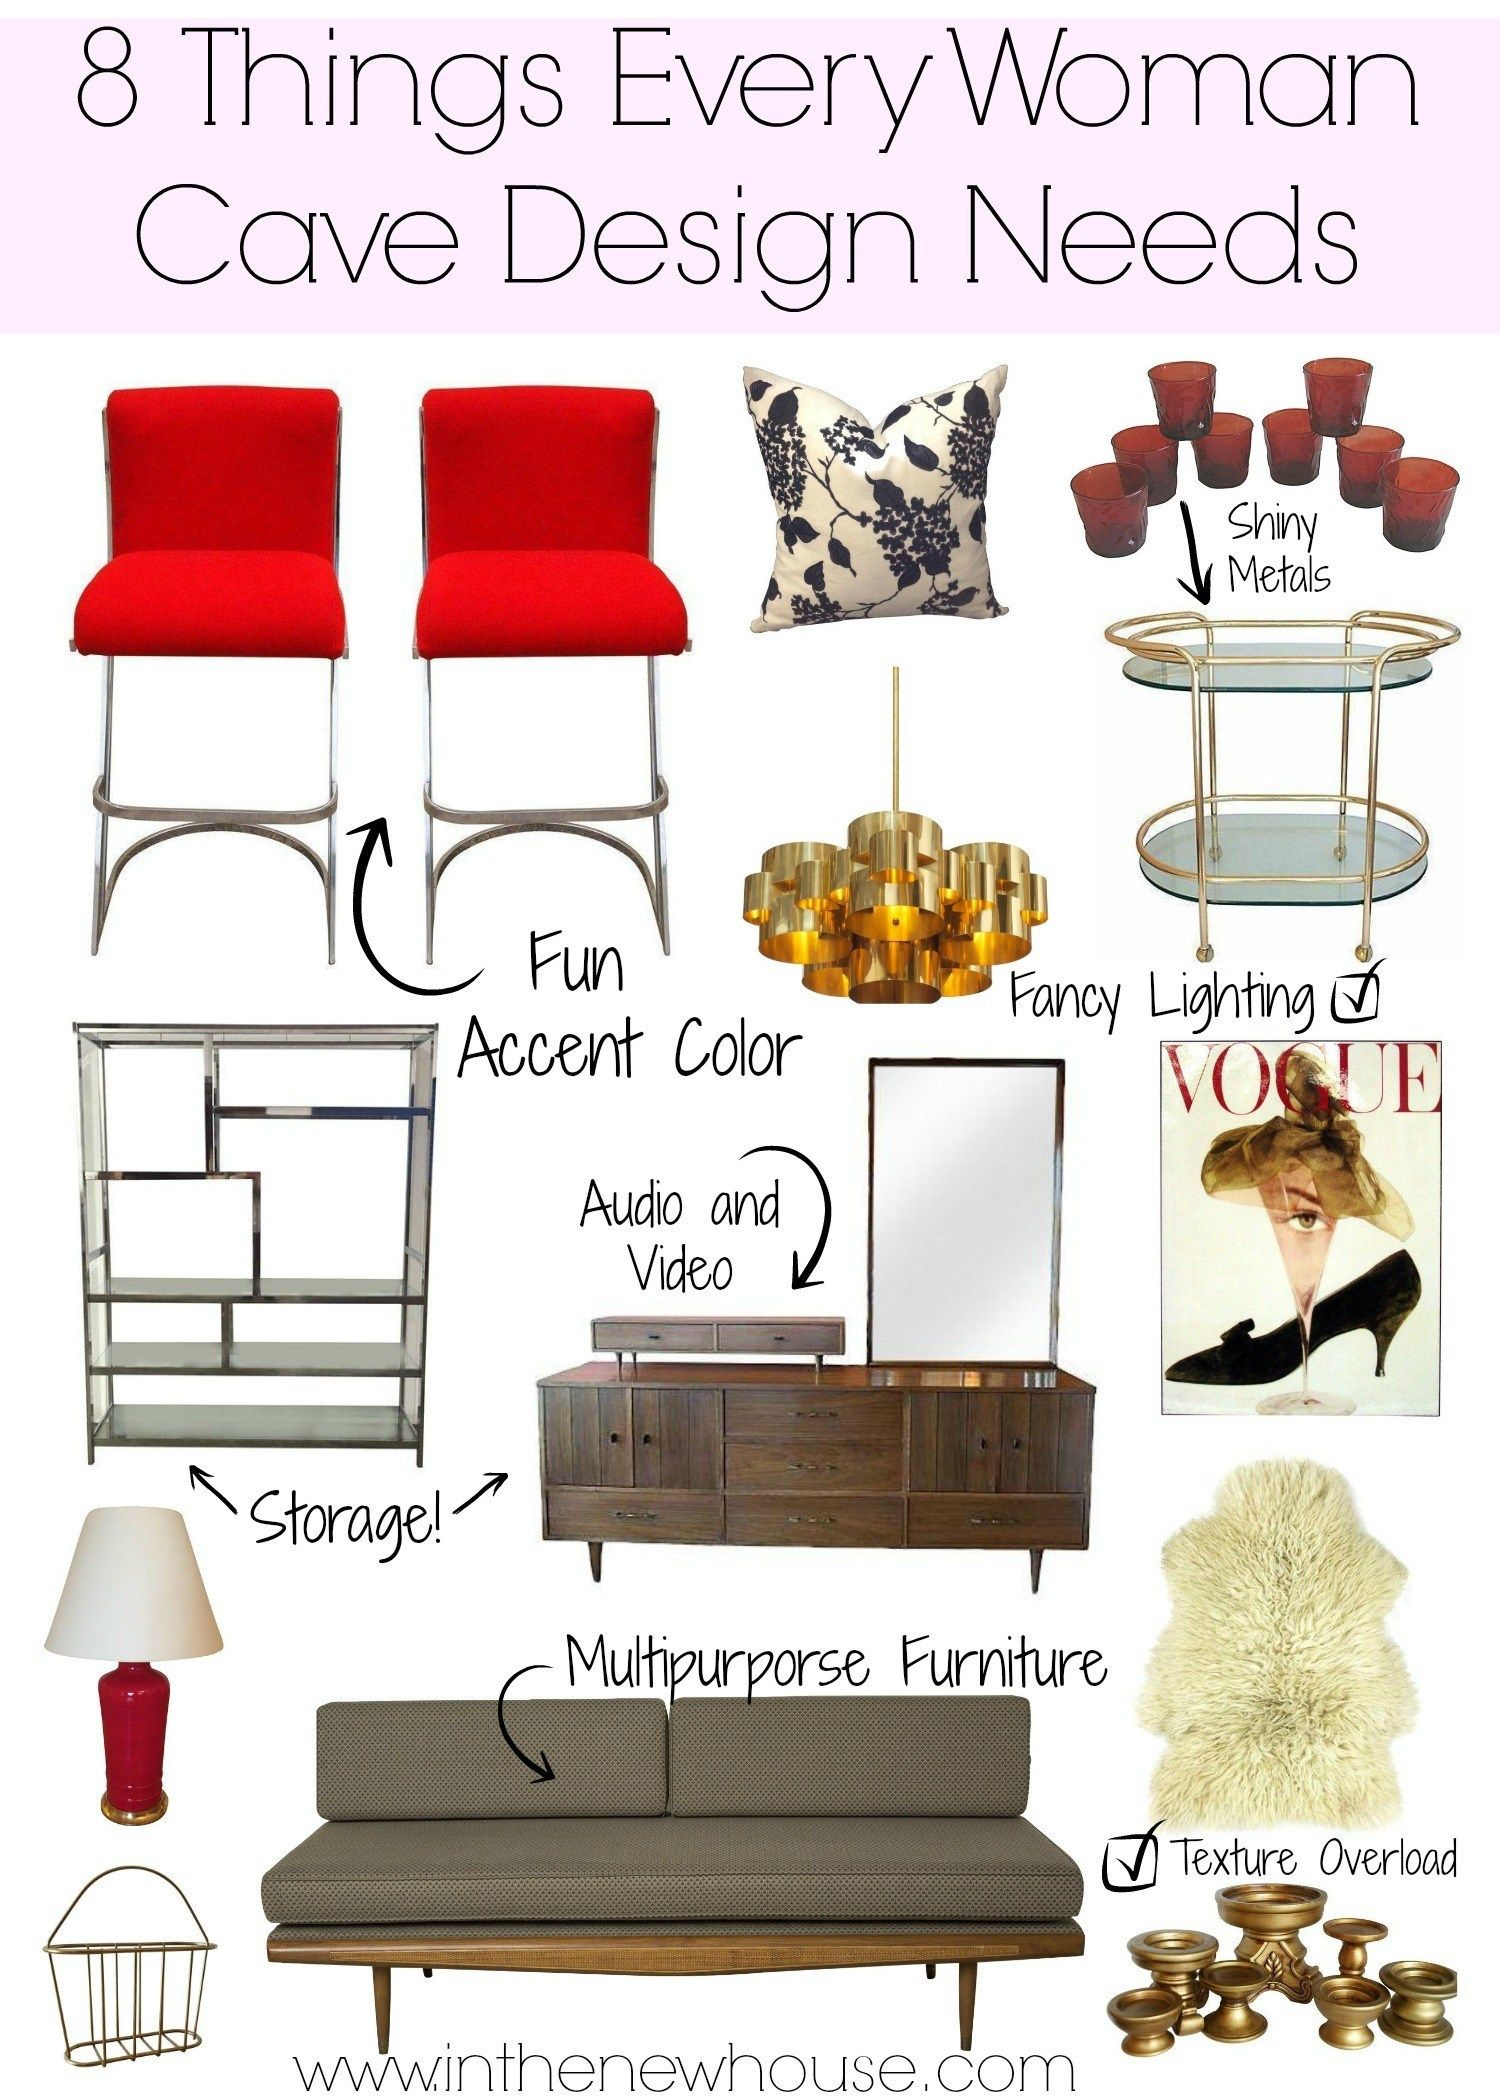 Photo of 8 Things Every Woman Cave Design Needs